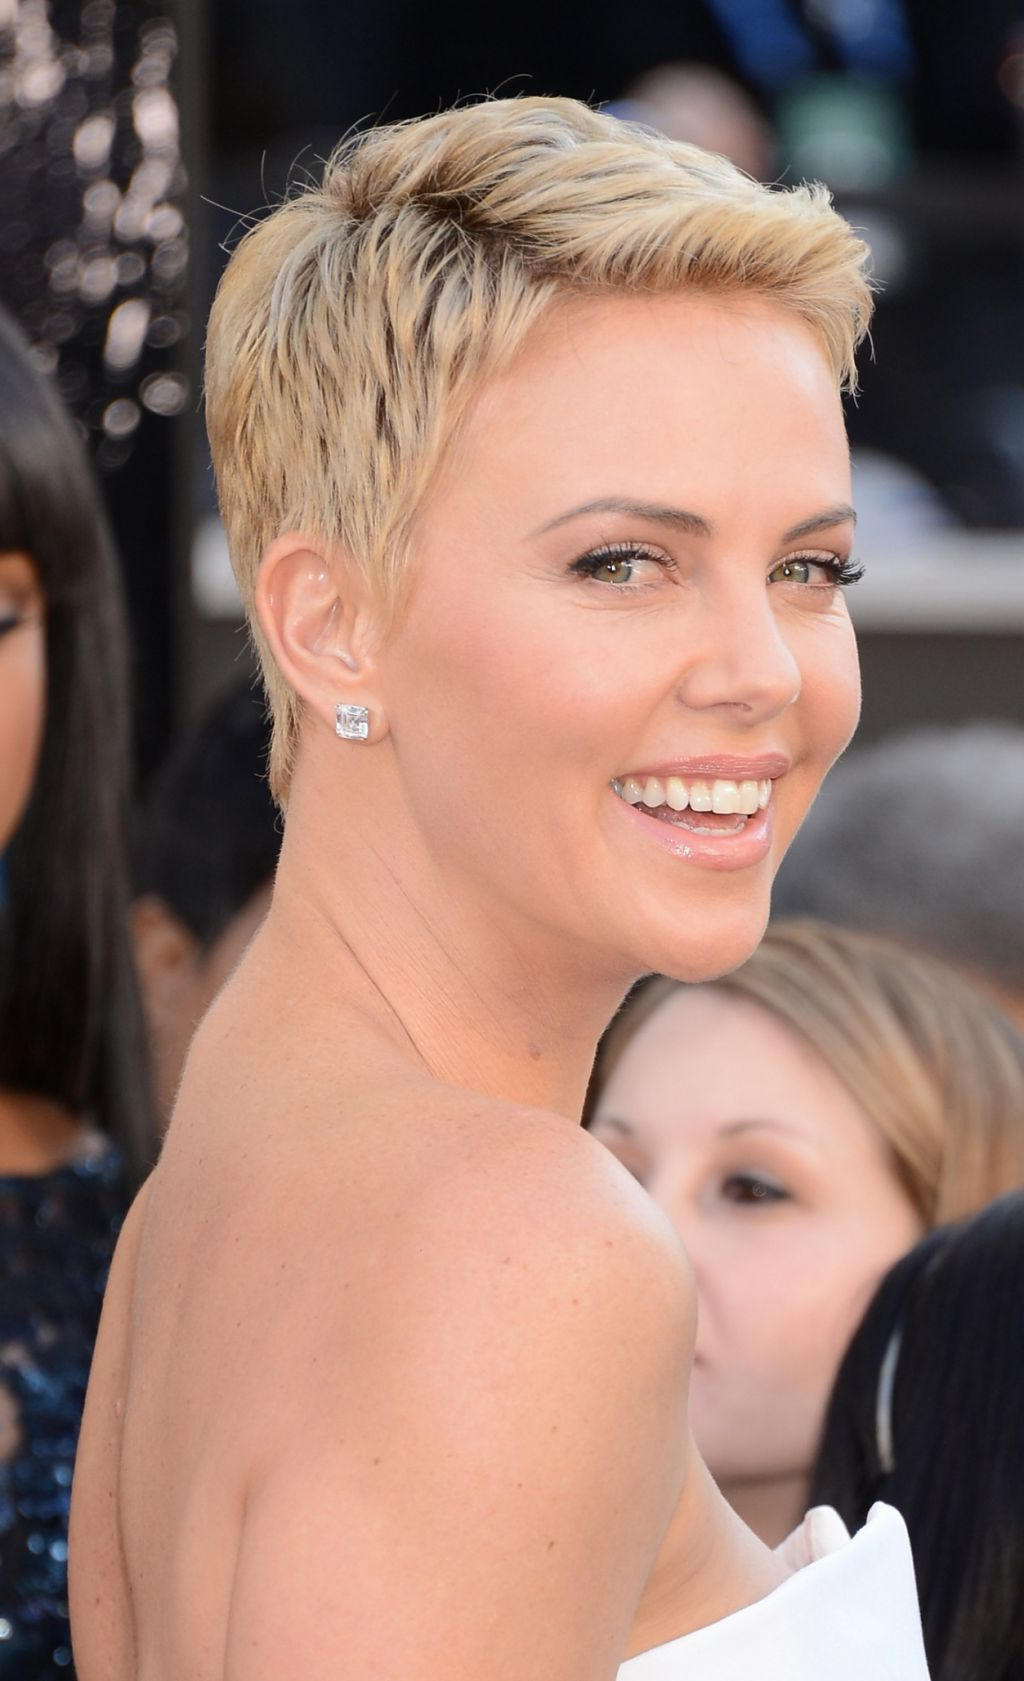 ? 24+ Best Cute Short Hairstyles For Thin Hair: Pictures Of Cute Inside Trendy Short Haircuts For Fine Hair (View 20 of 25)